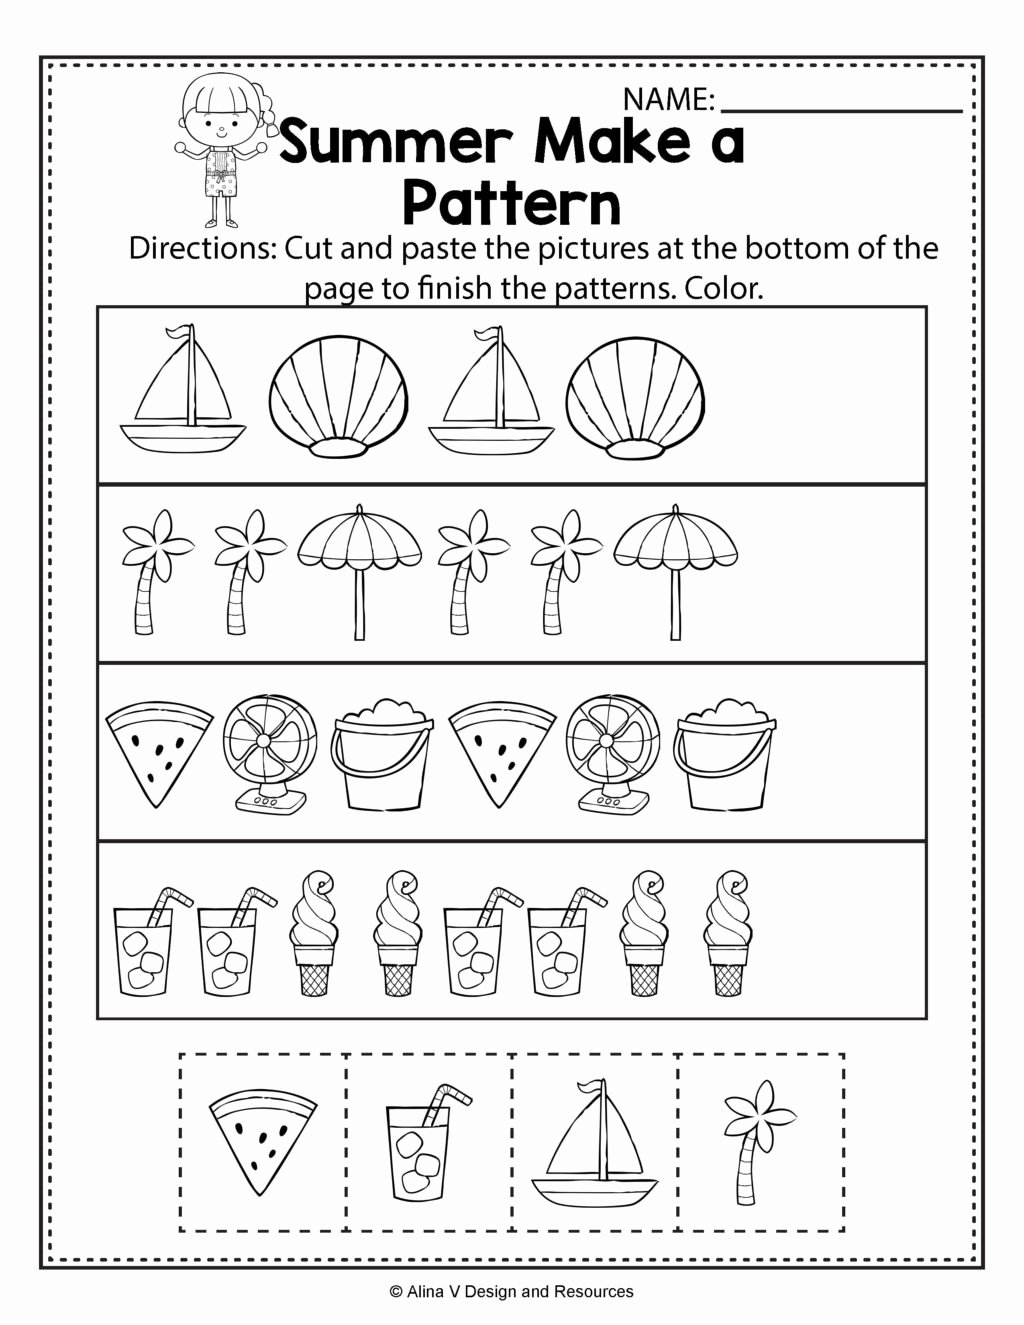 Worksheets for Preschoolers In Science New Worksheet Science Worksheet Preschool to Learningter for